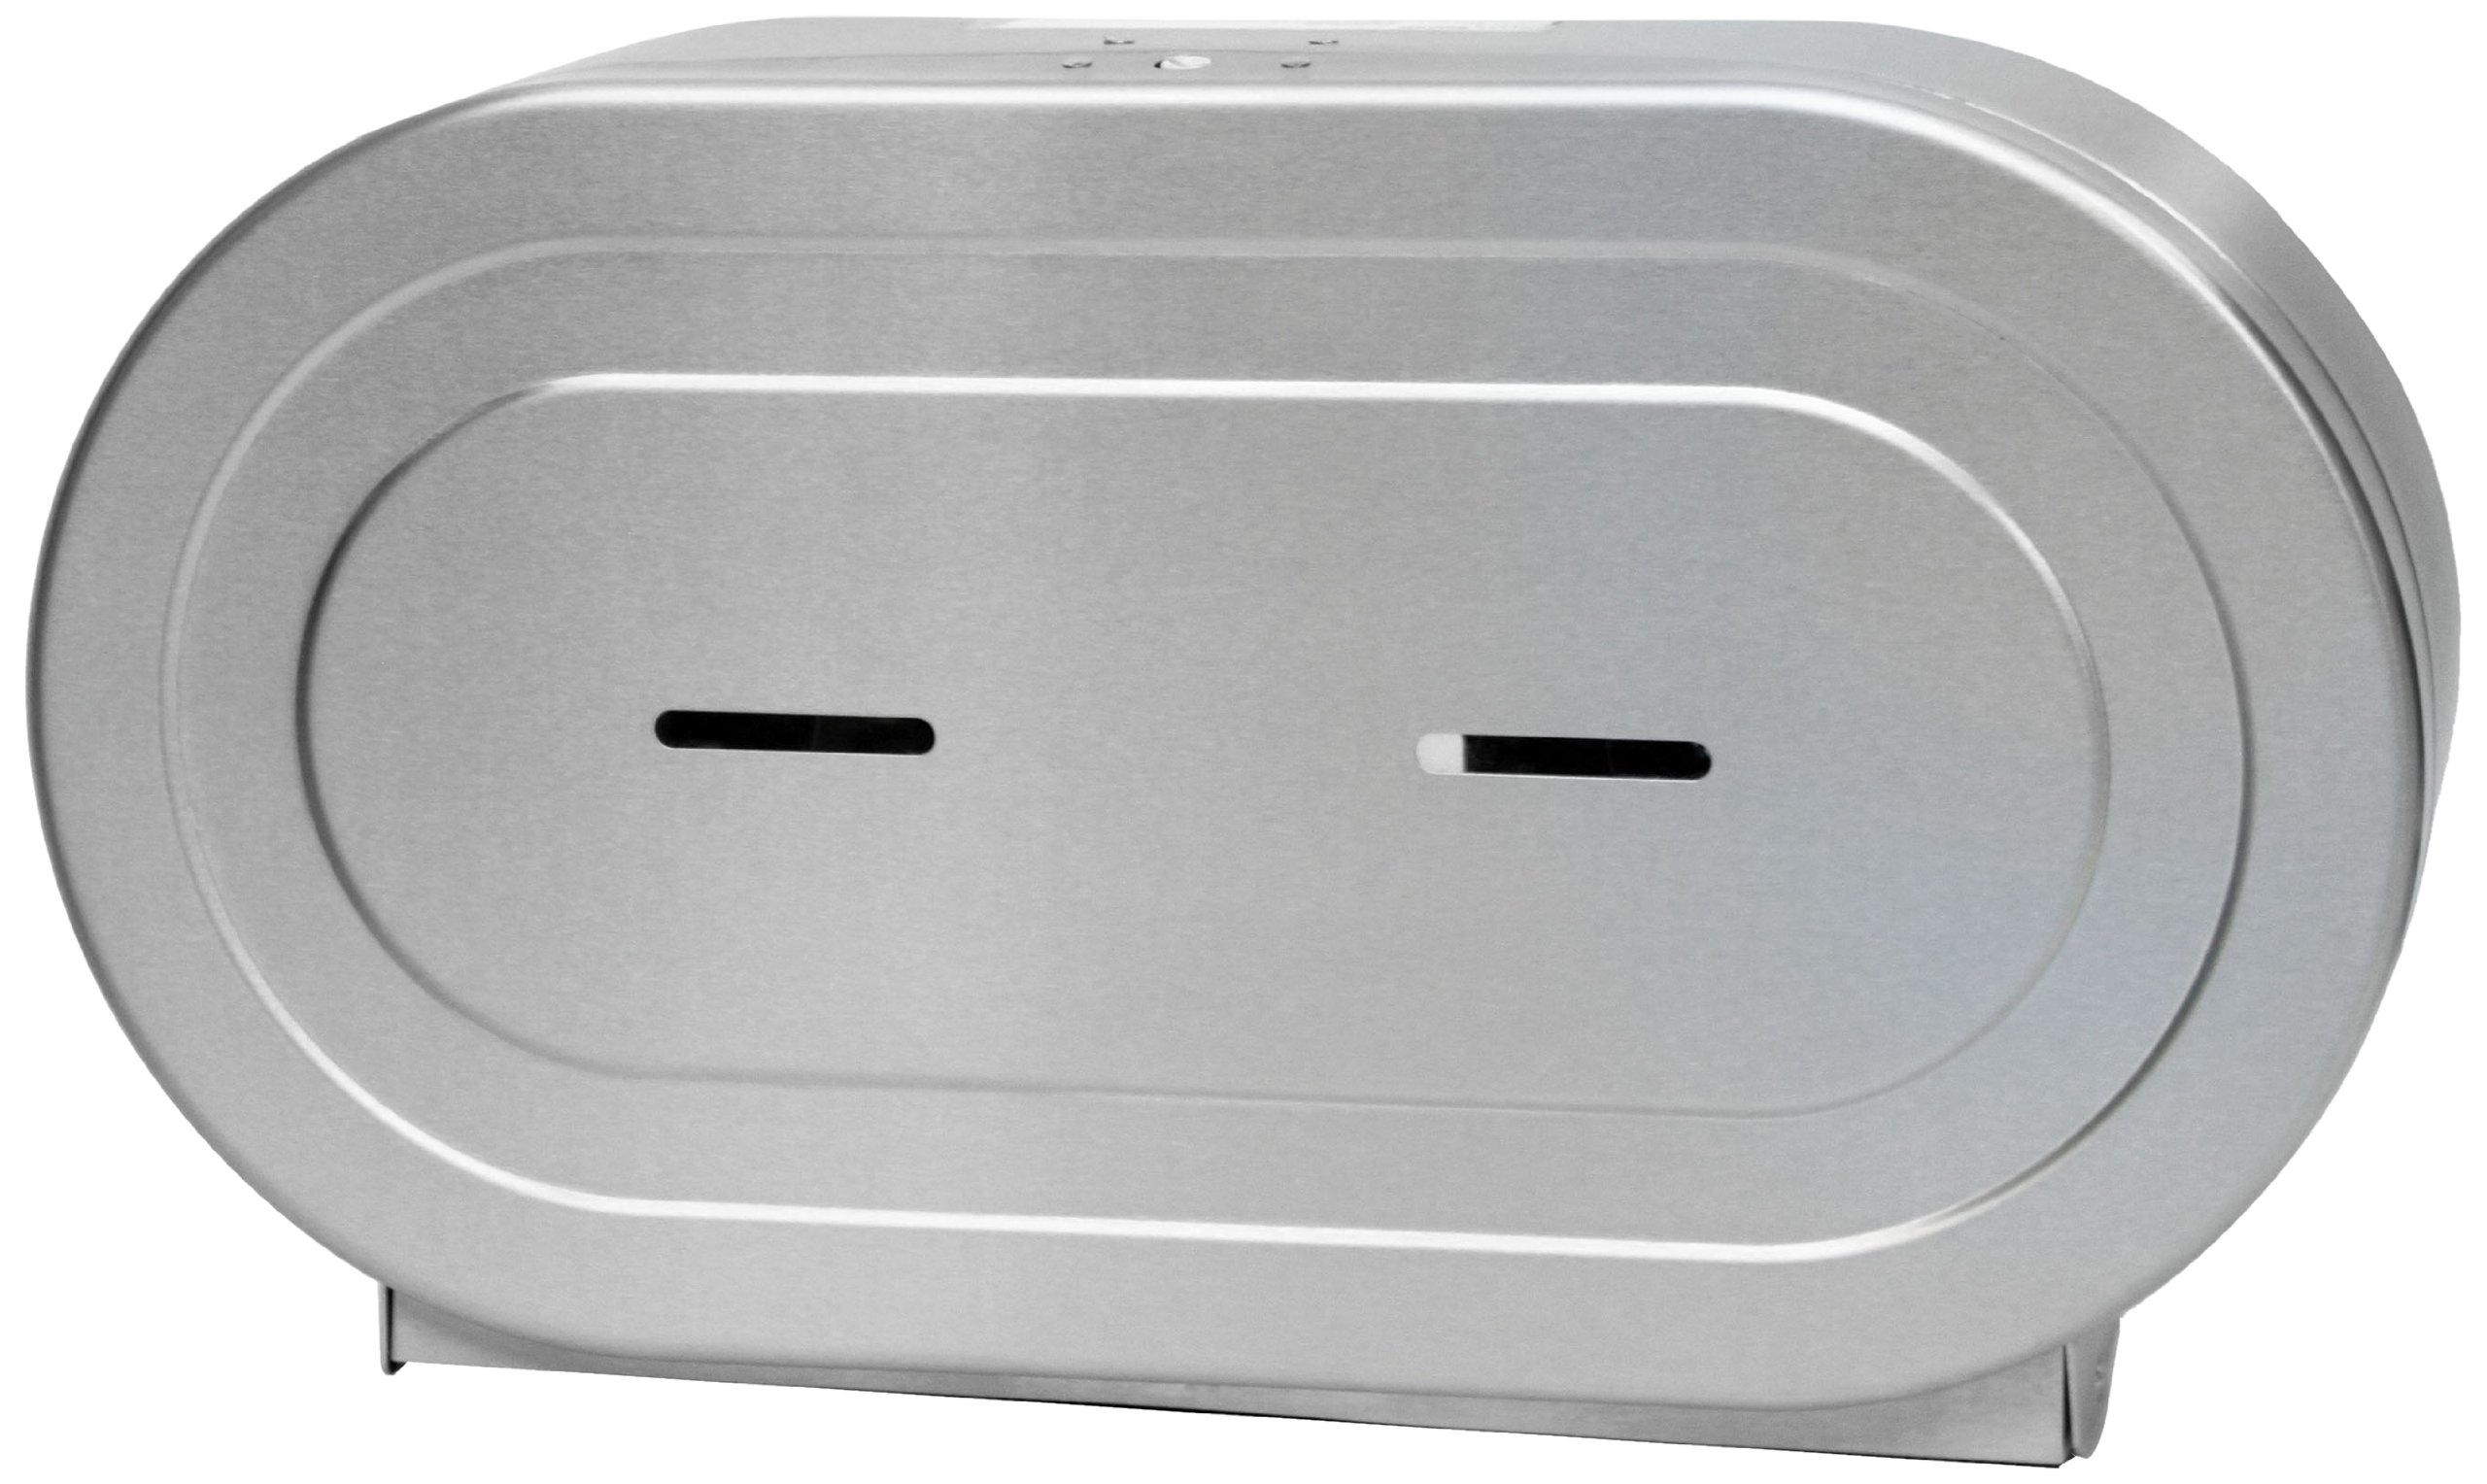 Palmer Fixture RD0327-09F Twin Jumbo Stainless Tissue Dispenser, Brushed Stainless